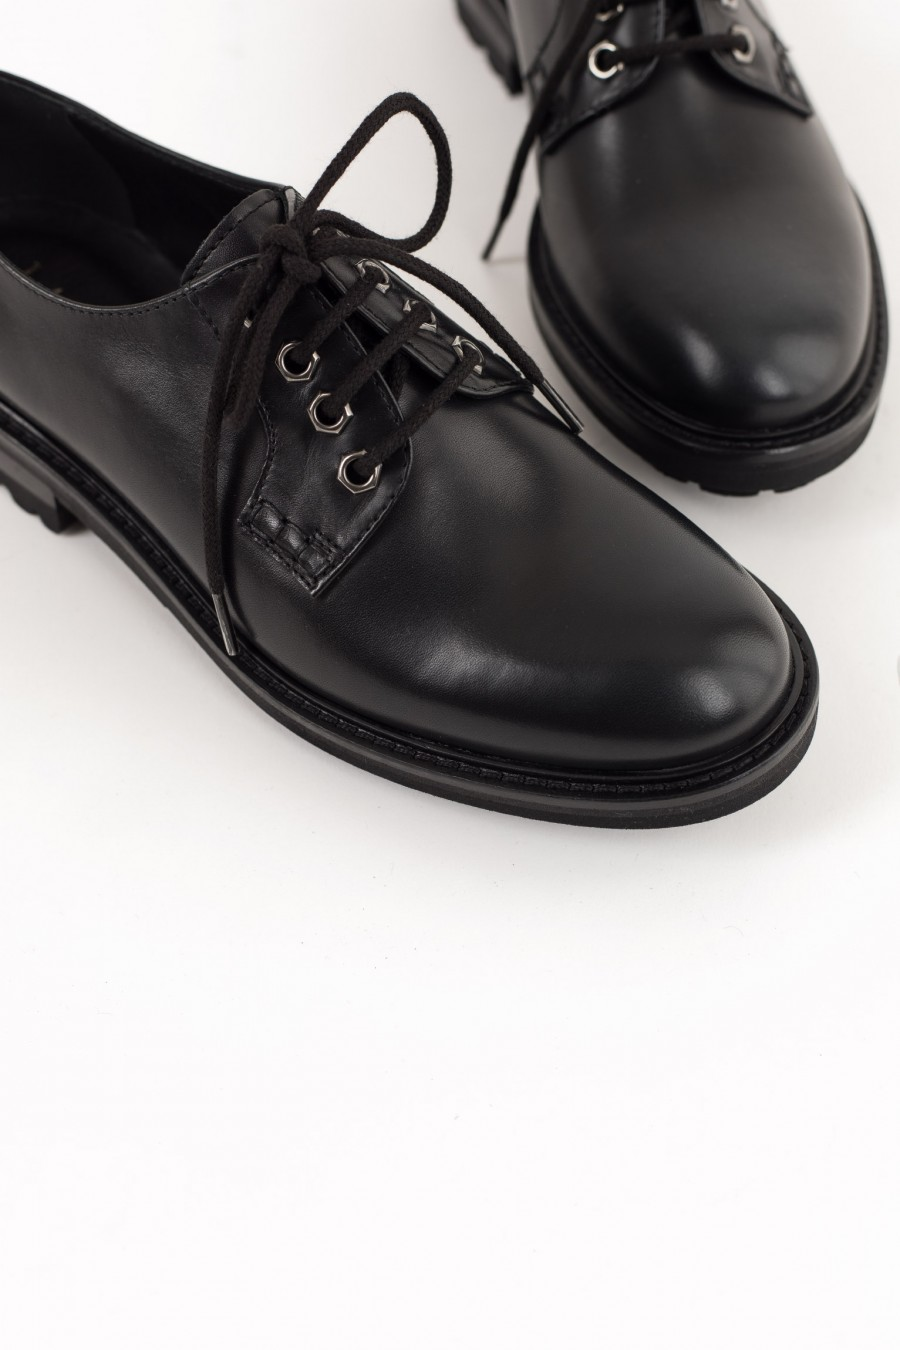 Black rounded toe derby shoes